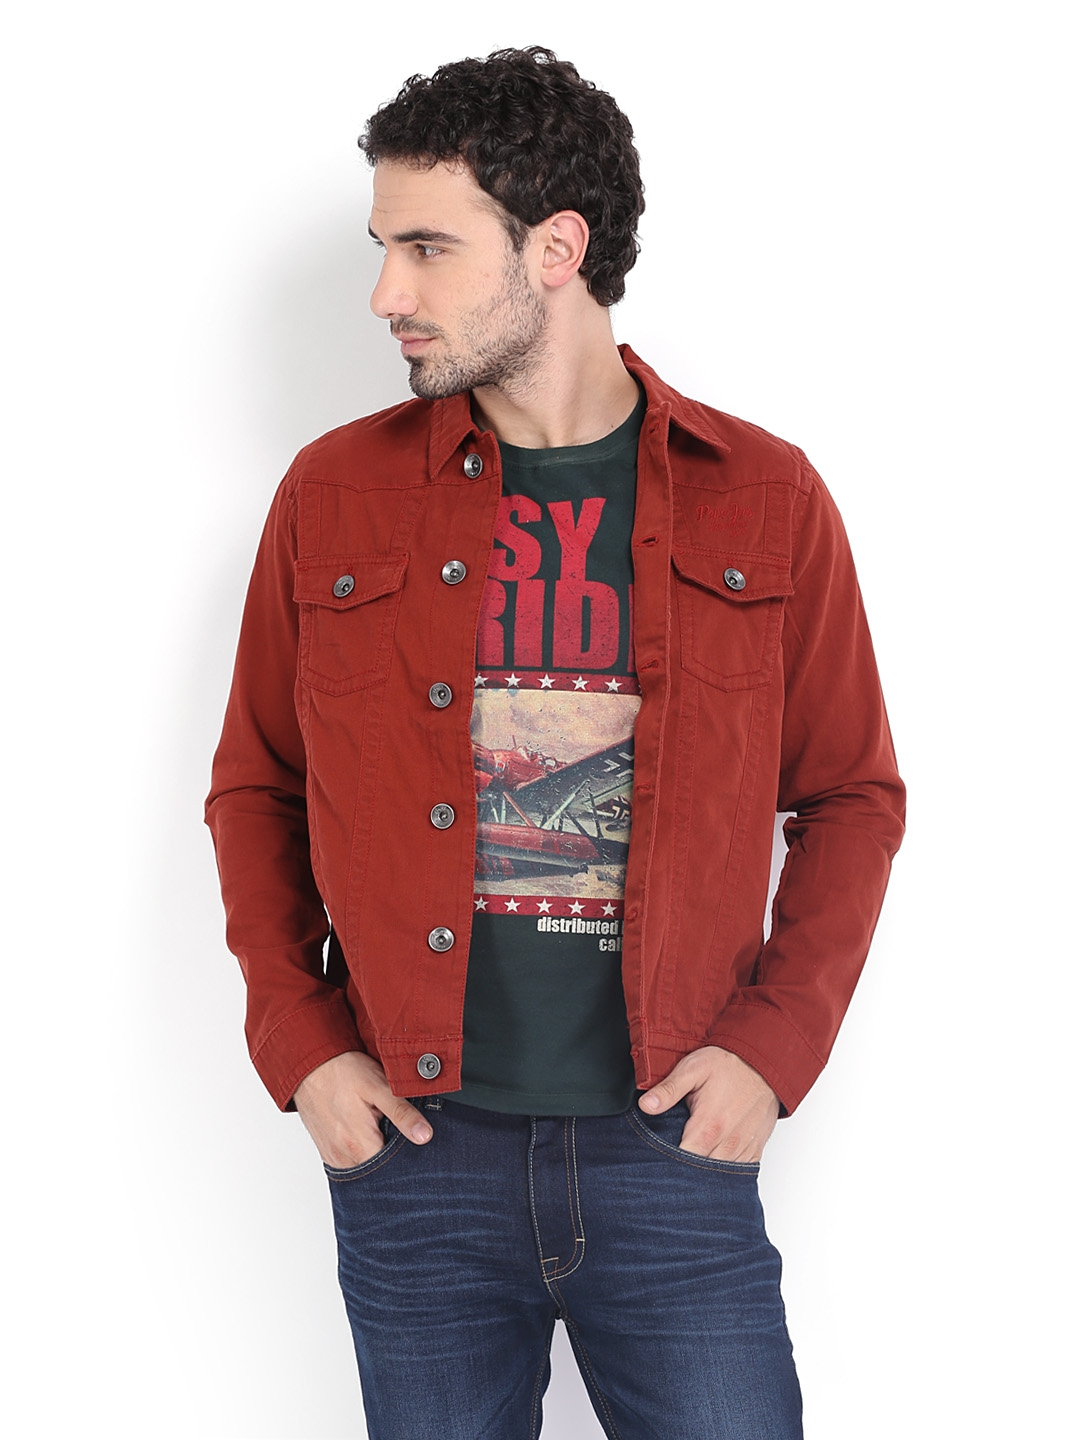 Red Jean Jacket Mens Photo Album - Watch Out, There's a Clothes About